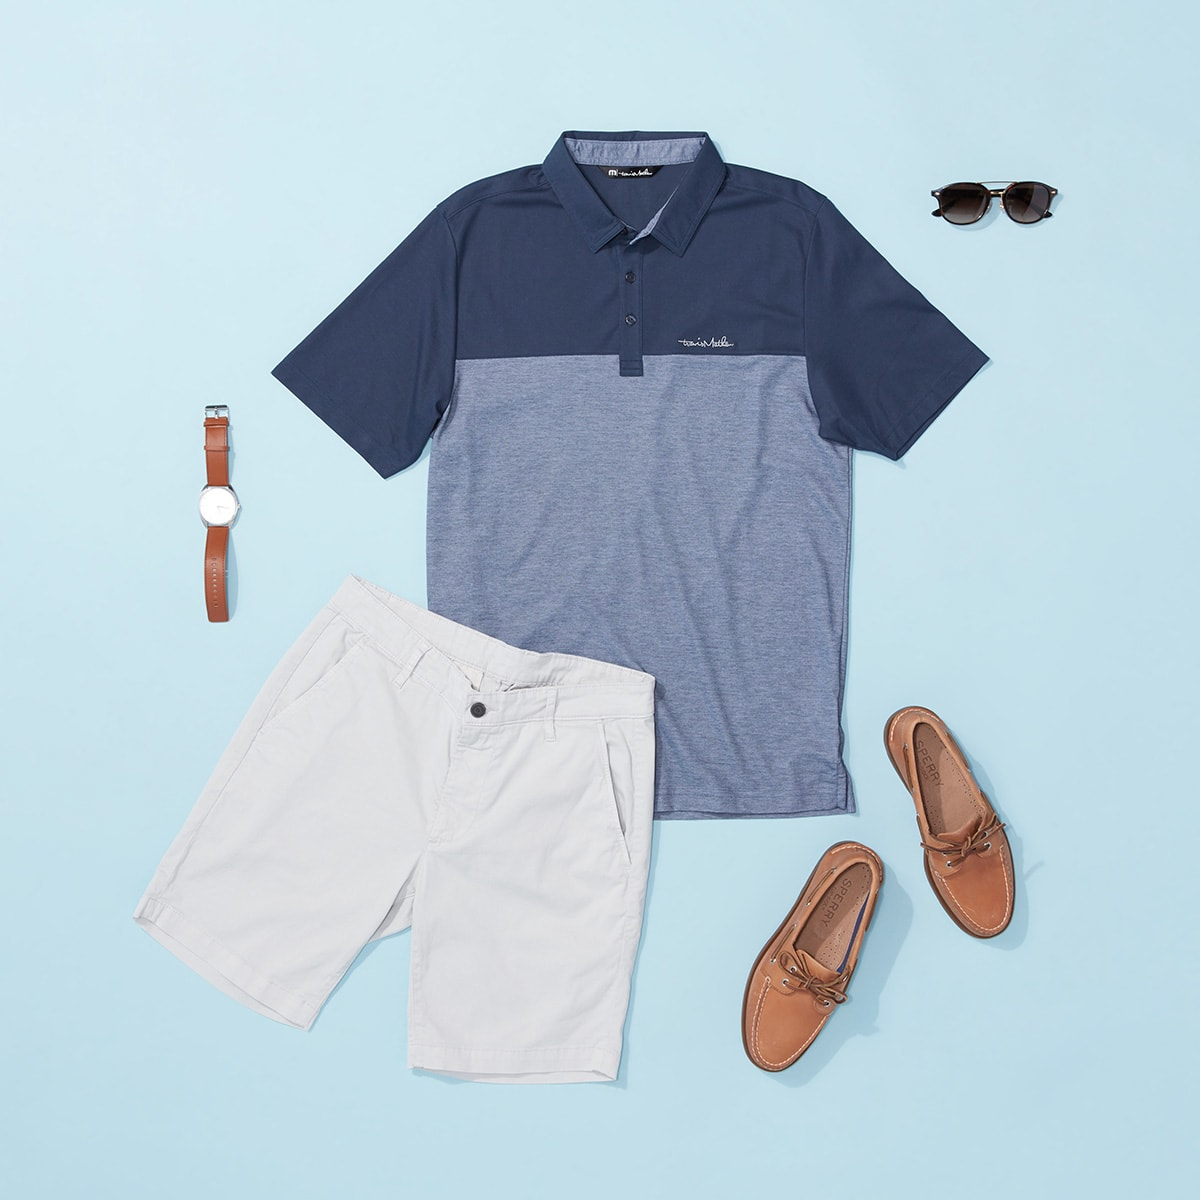 4th of July outfit for men